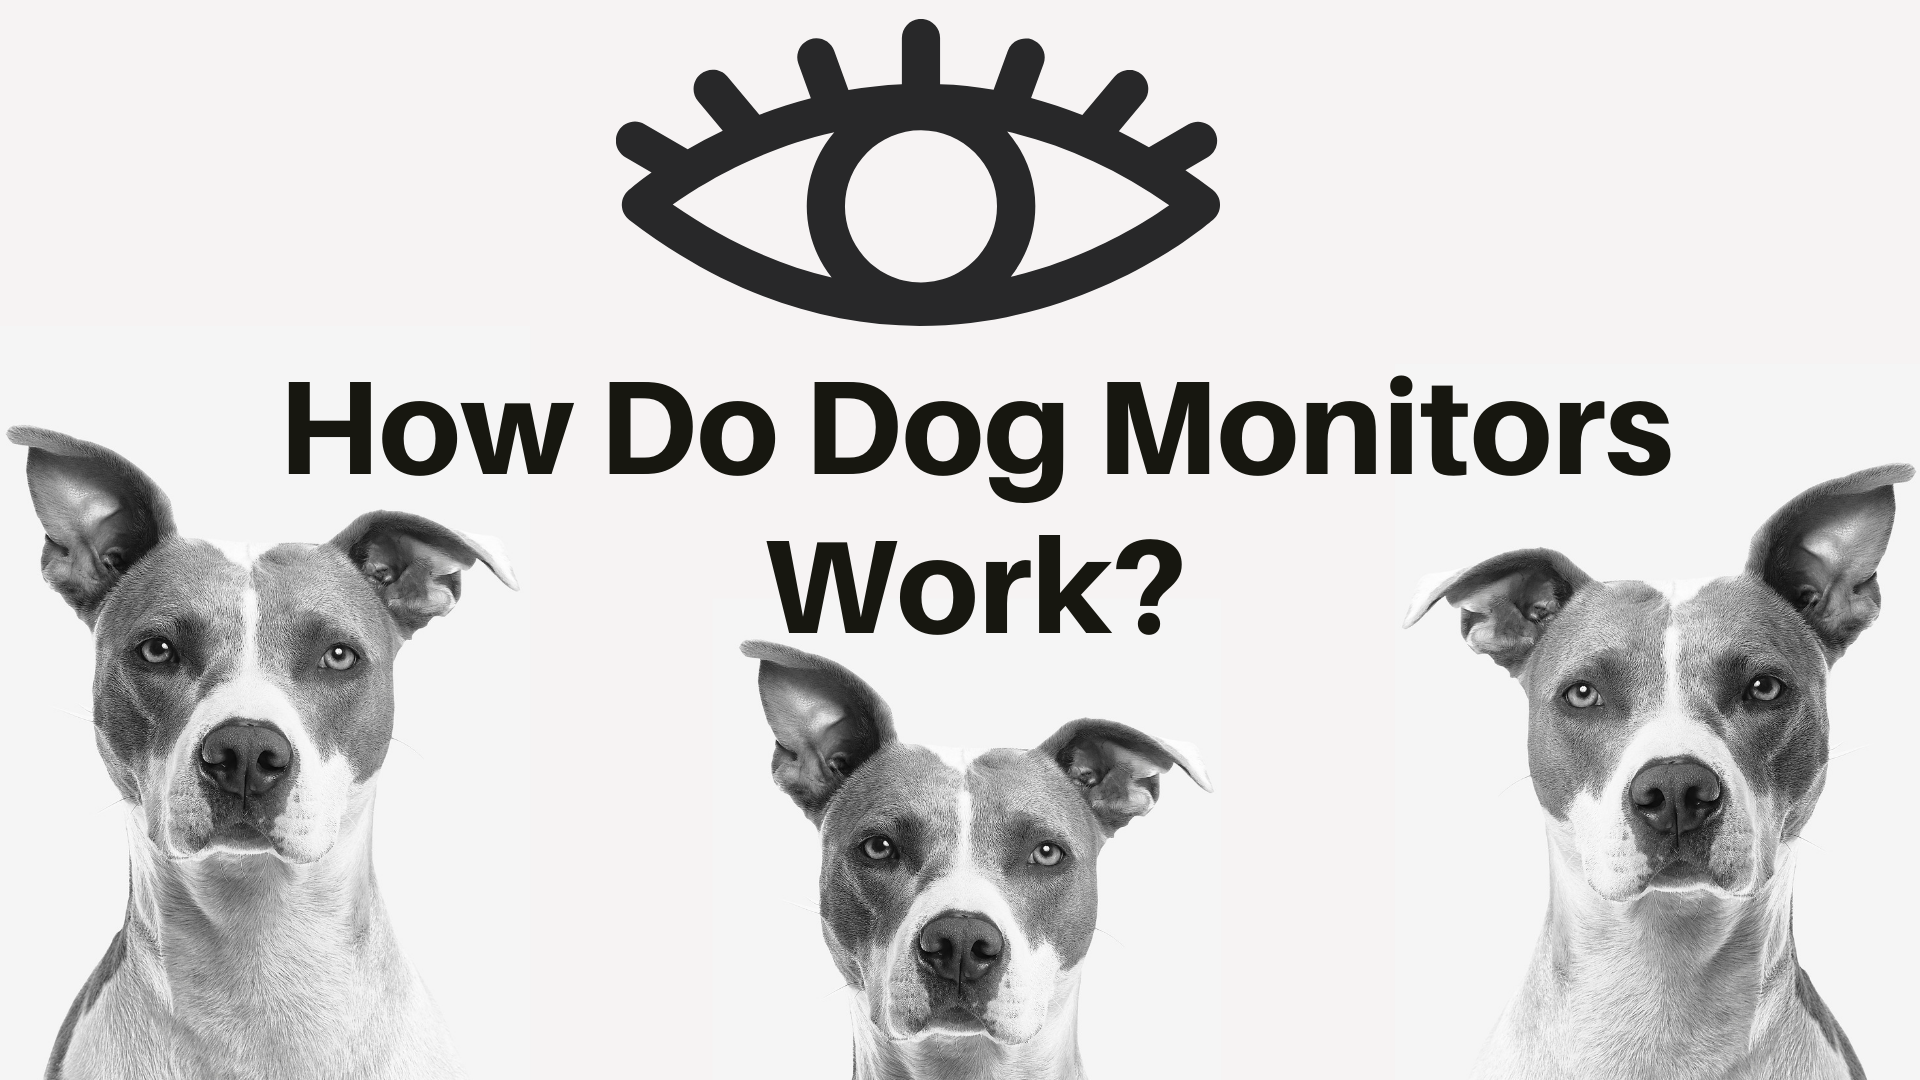 How Do Dog Monitors Work?